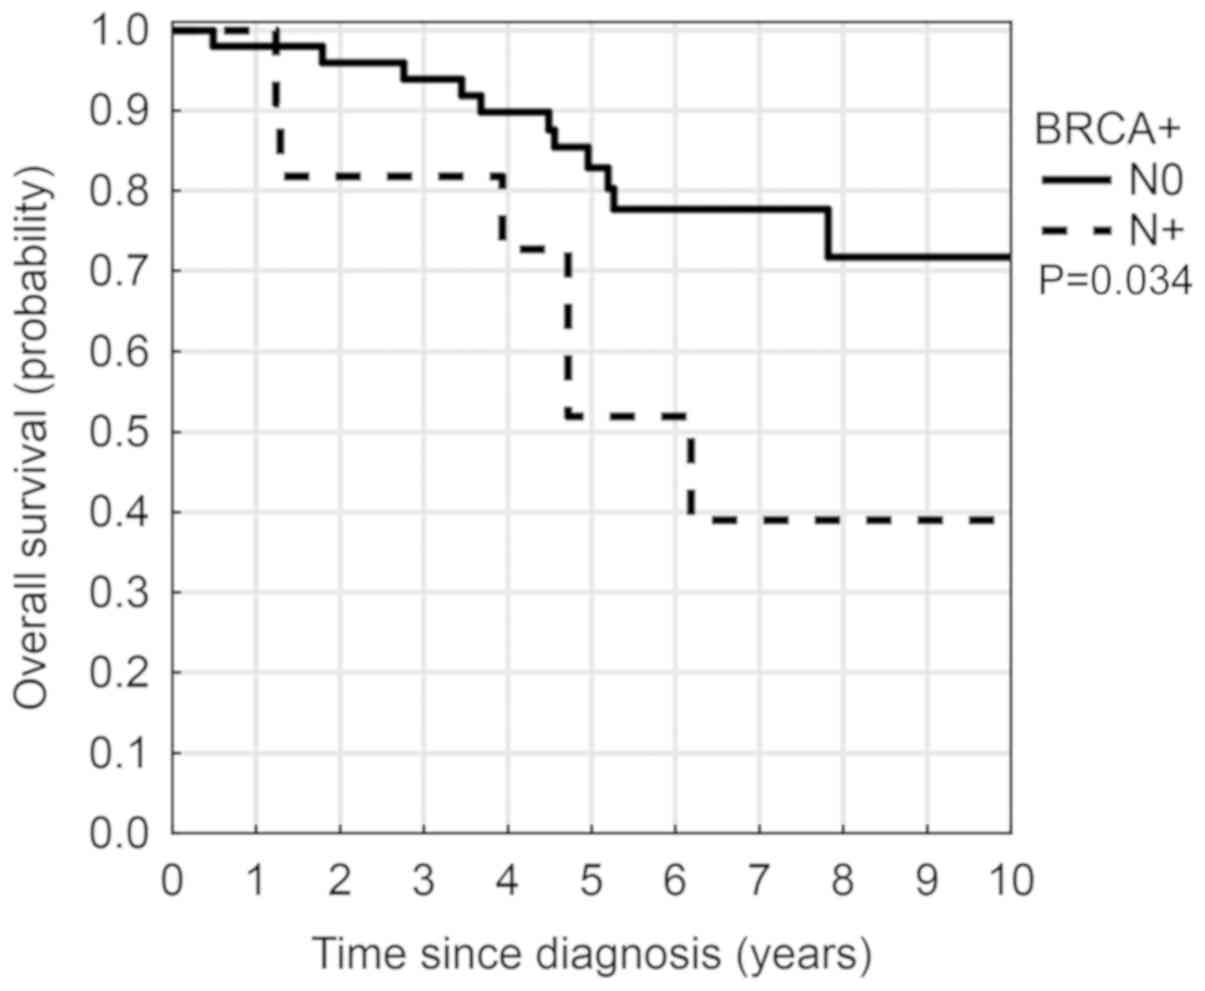 Brca1 Mutation In Breast Cancer Patients Analysis Of Prognostic Factors And Survival